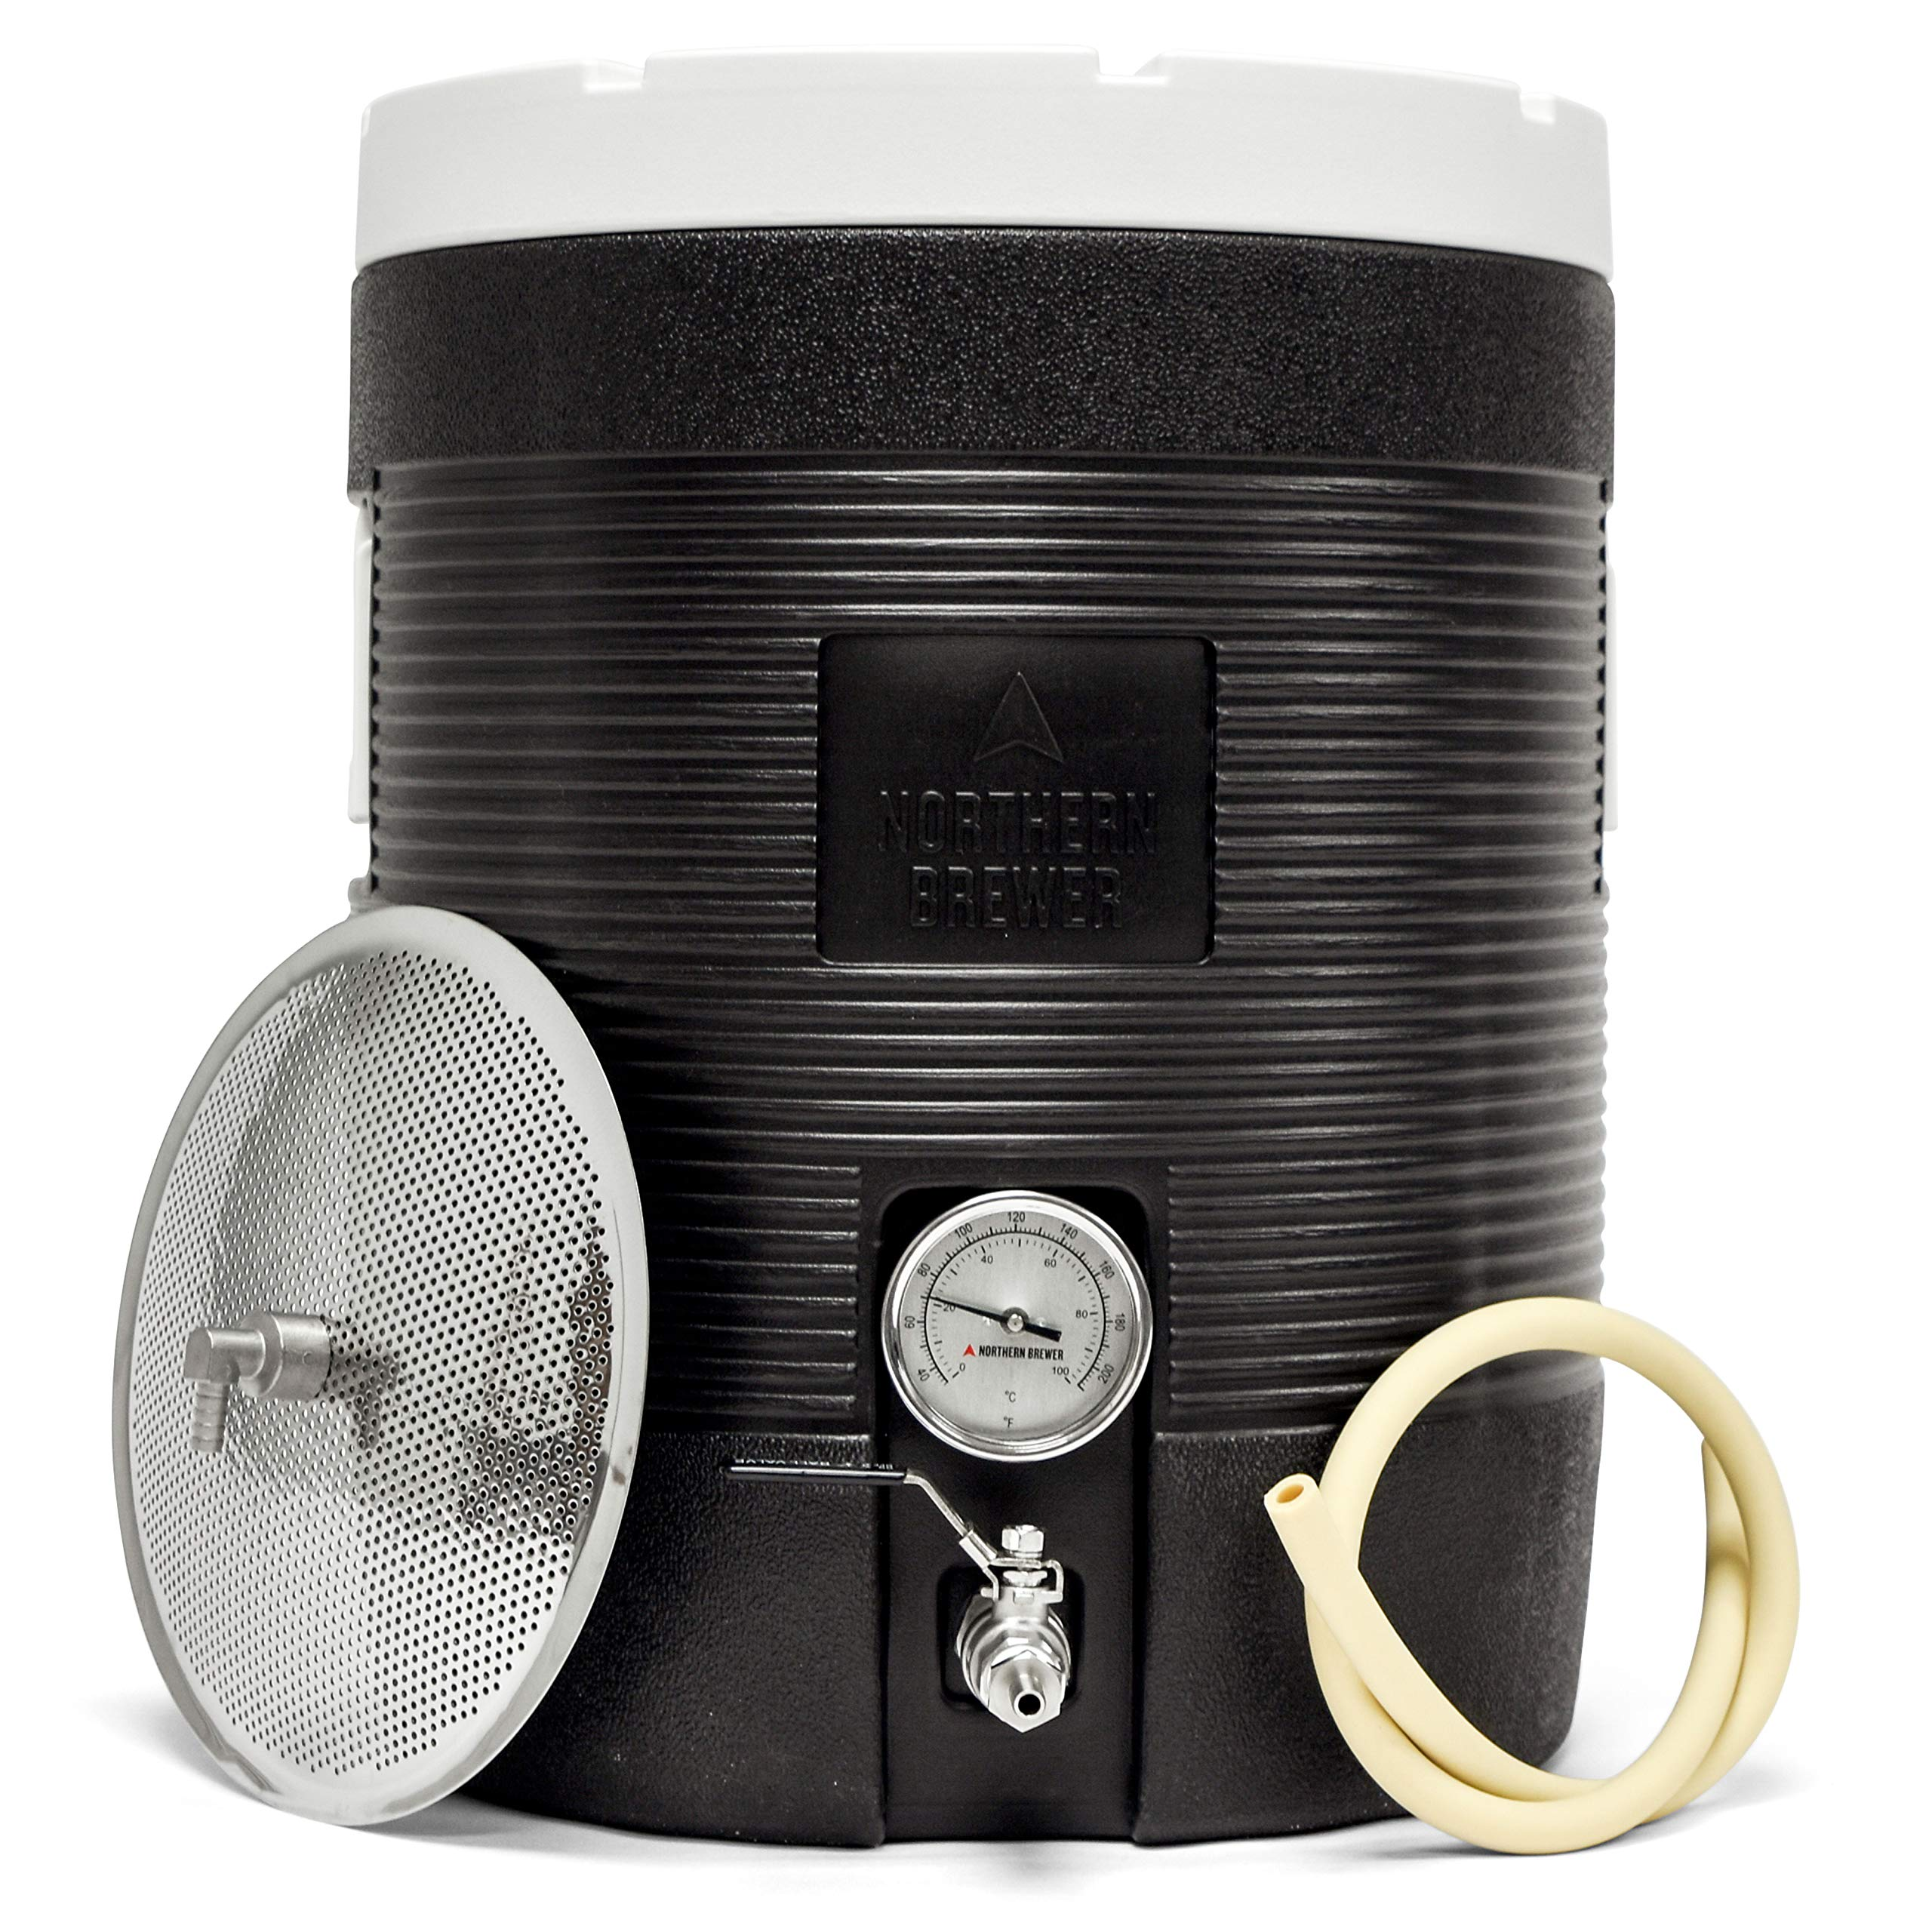 Northern Brewer - Fermenter's Favorites Insulated Cooler Essential All Grain Beer Brewing Kits (12 Gallon Mash Tun)